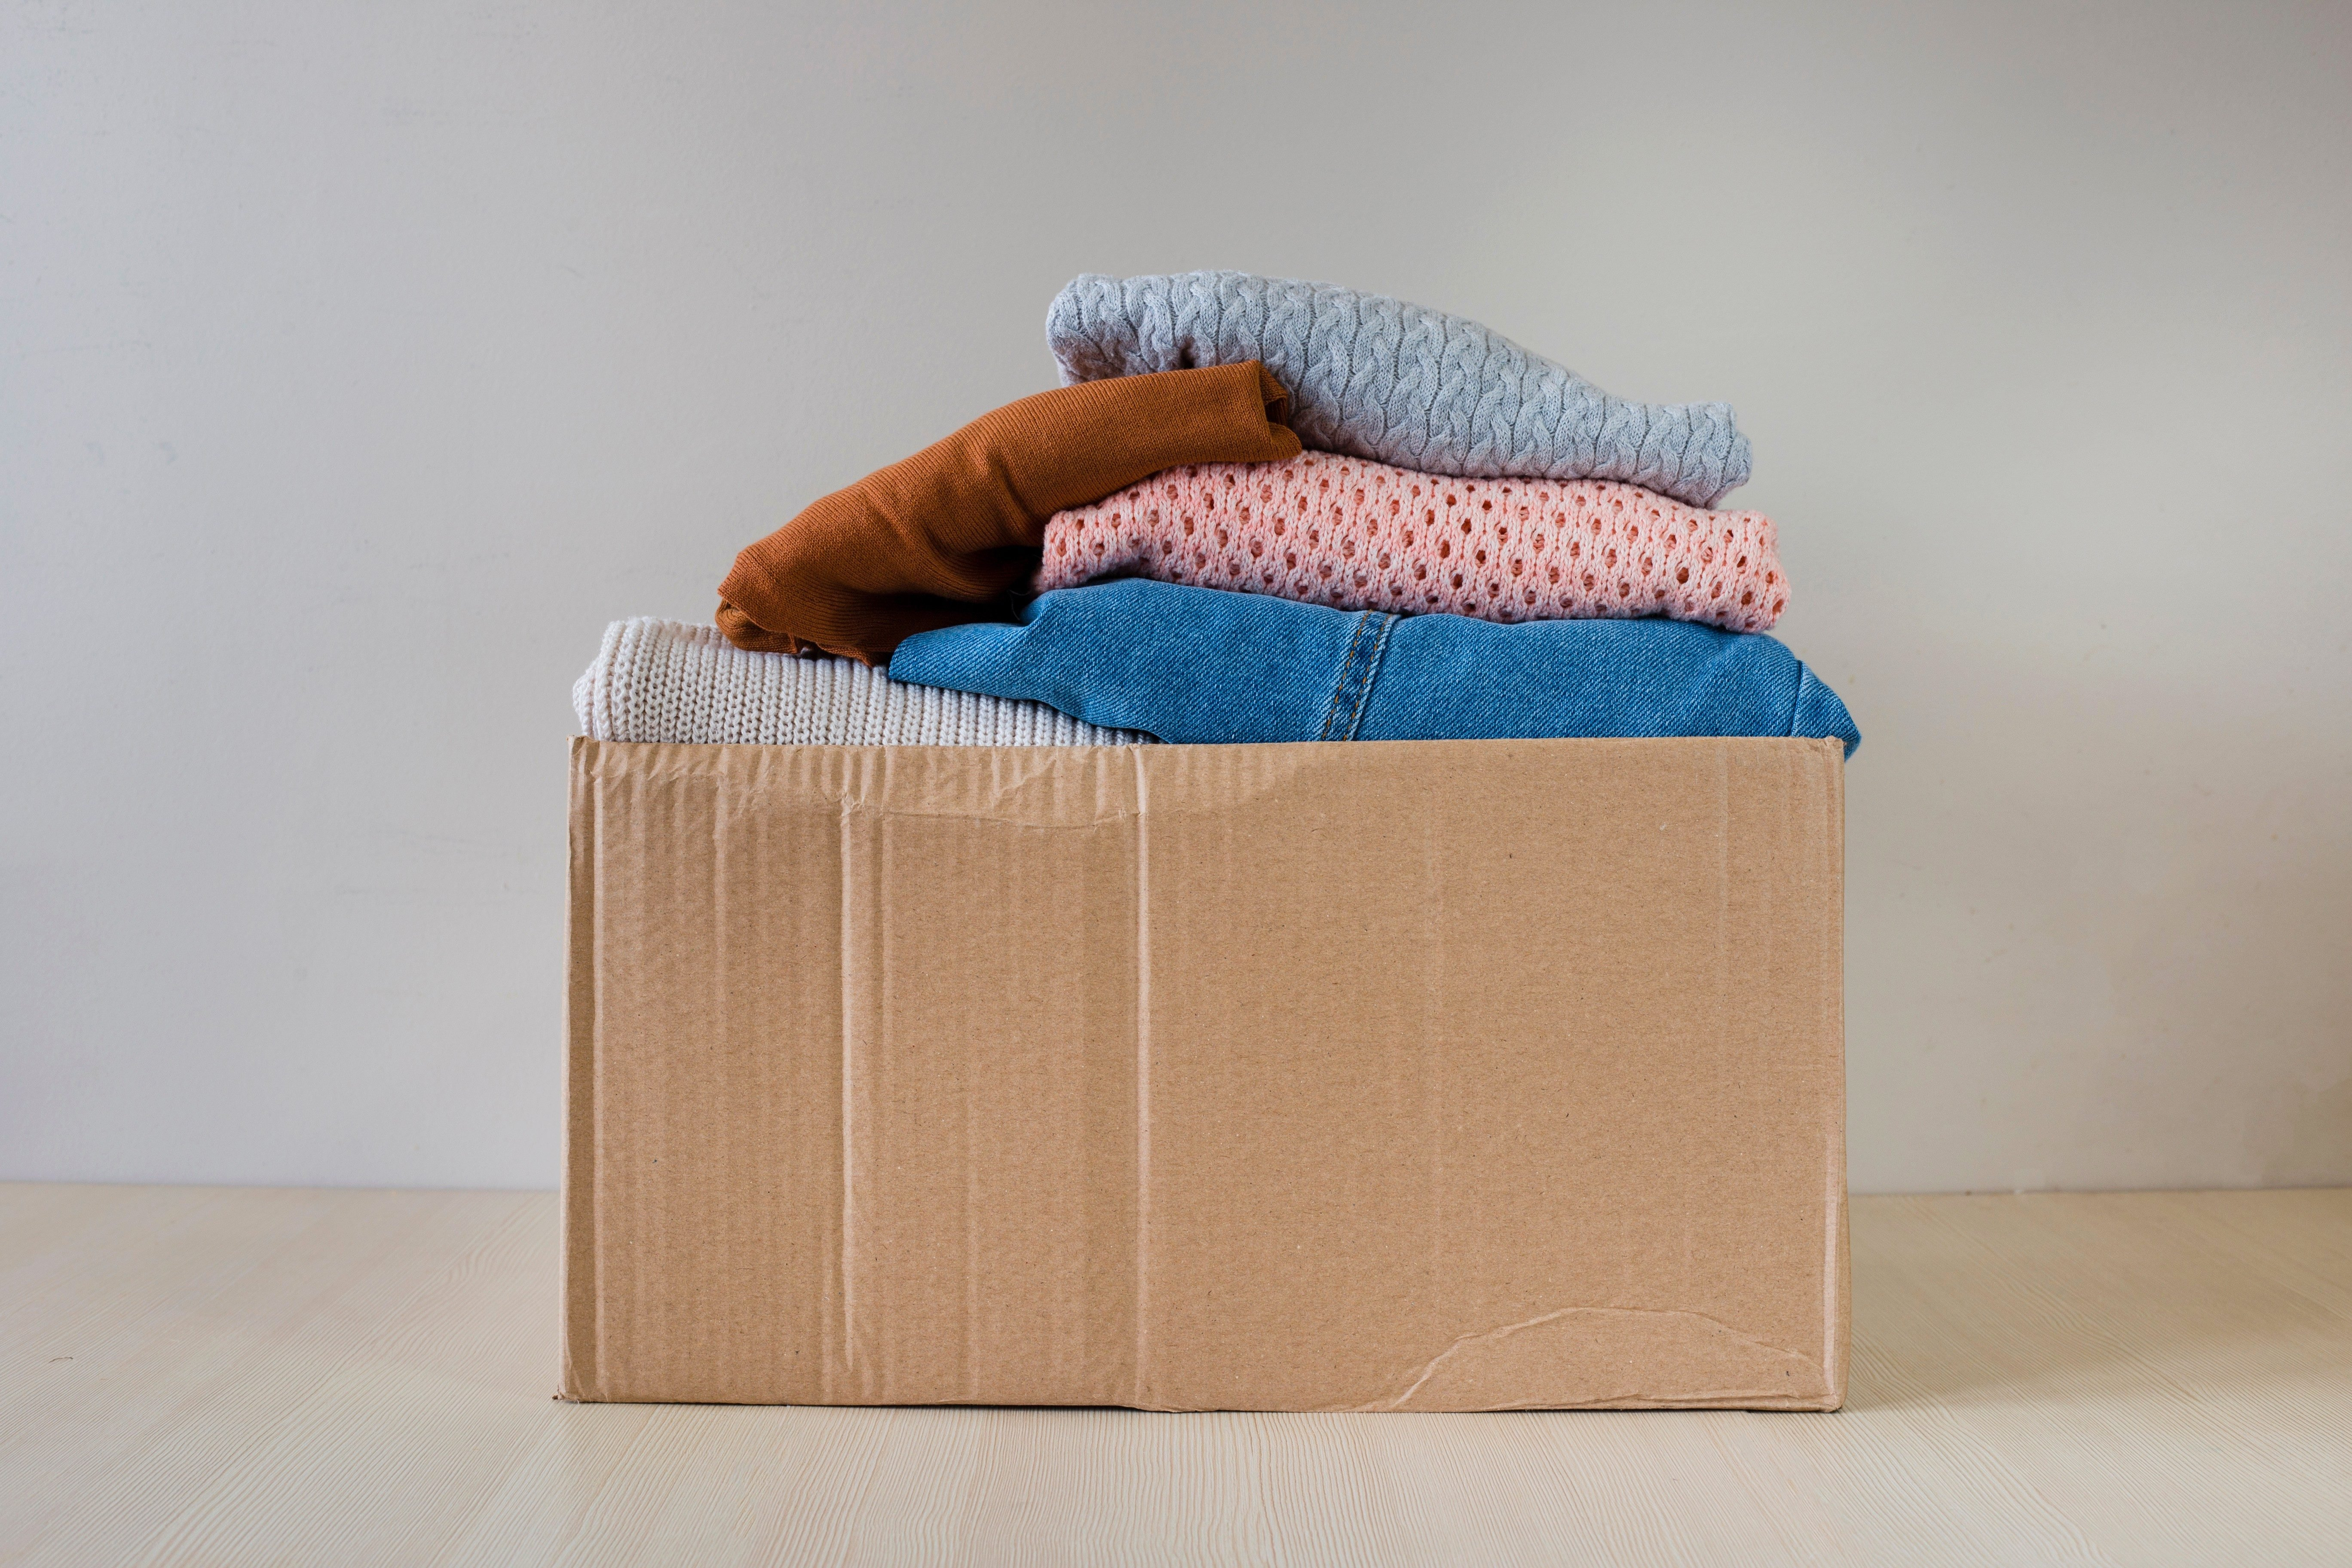 Cardboard old box with clothes on wooden table. Concept for charity, free clothes giving service. Neutral, pastel colors background. Image.<br /> ; Shutterstock ID 1440468068; Job (TFH, TOH, RD, BNB, CWM, CM): RD